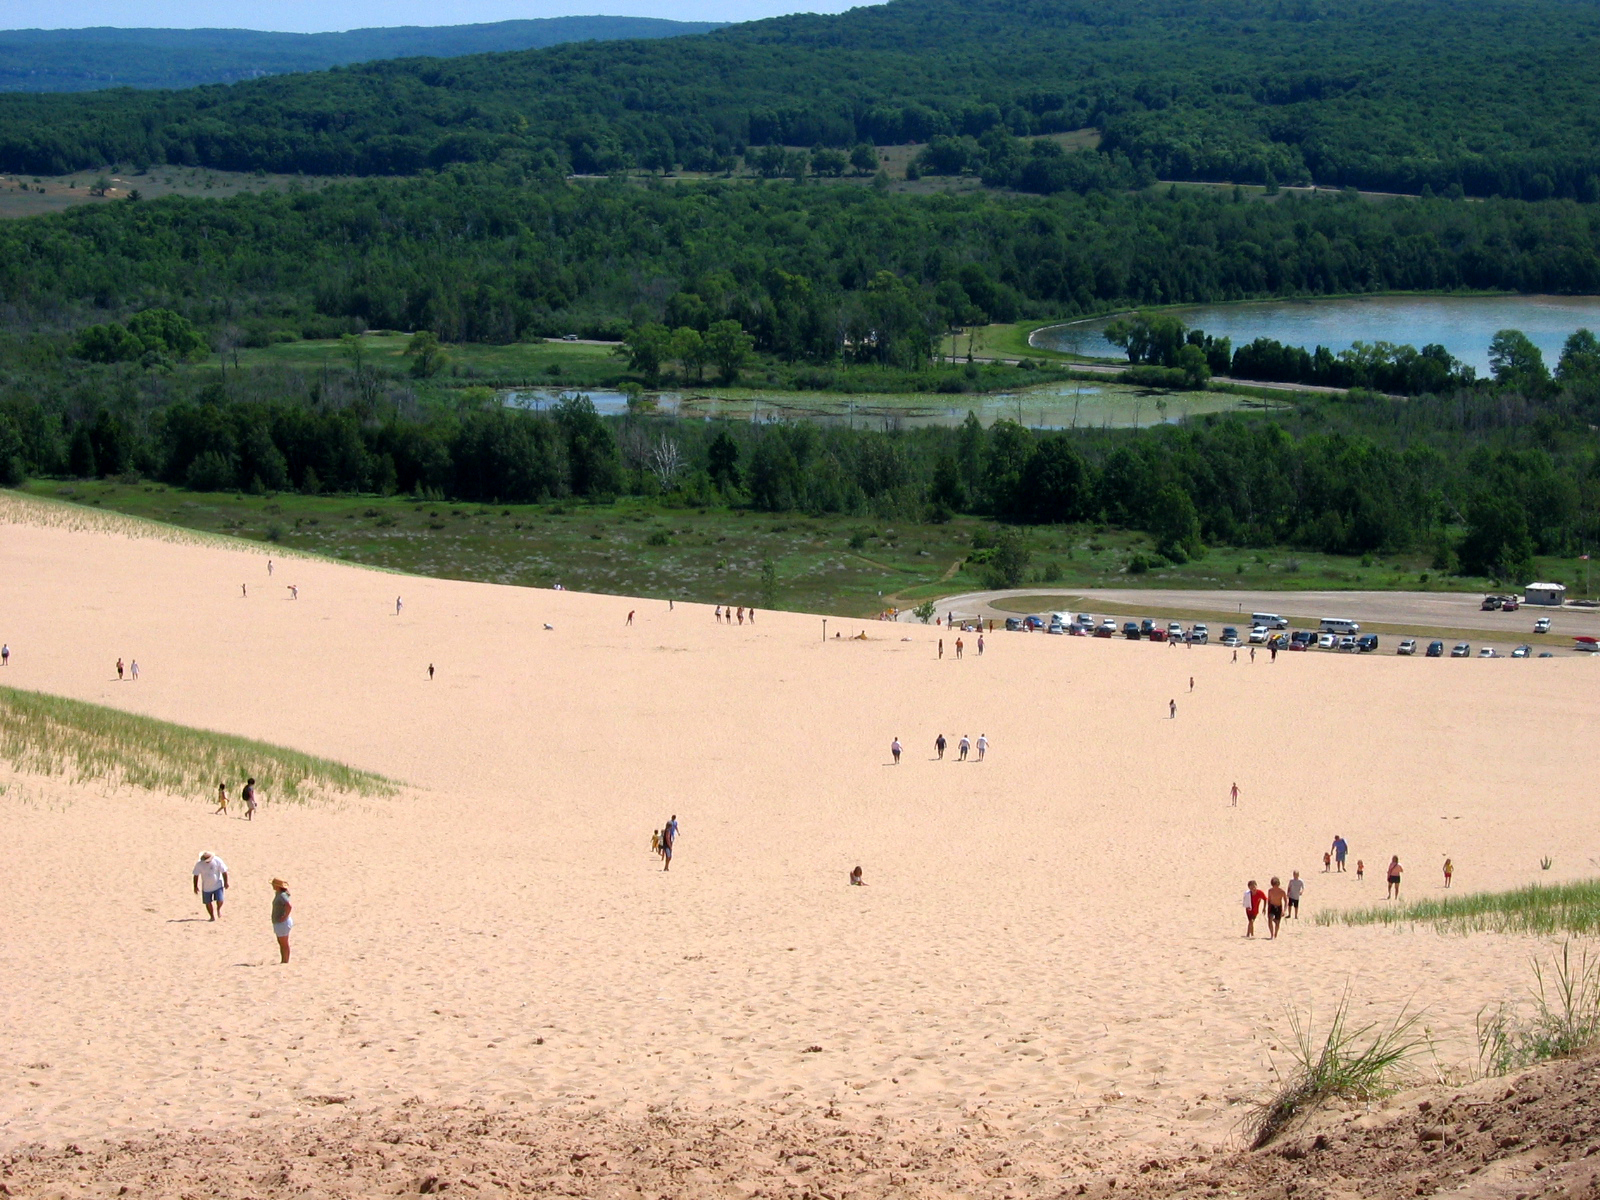 Looking down from the Climbing Dune